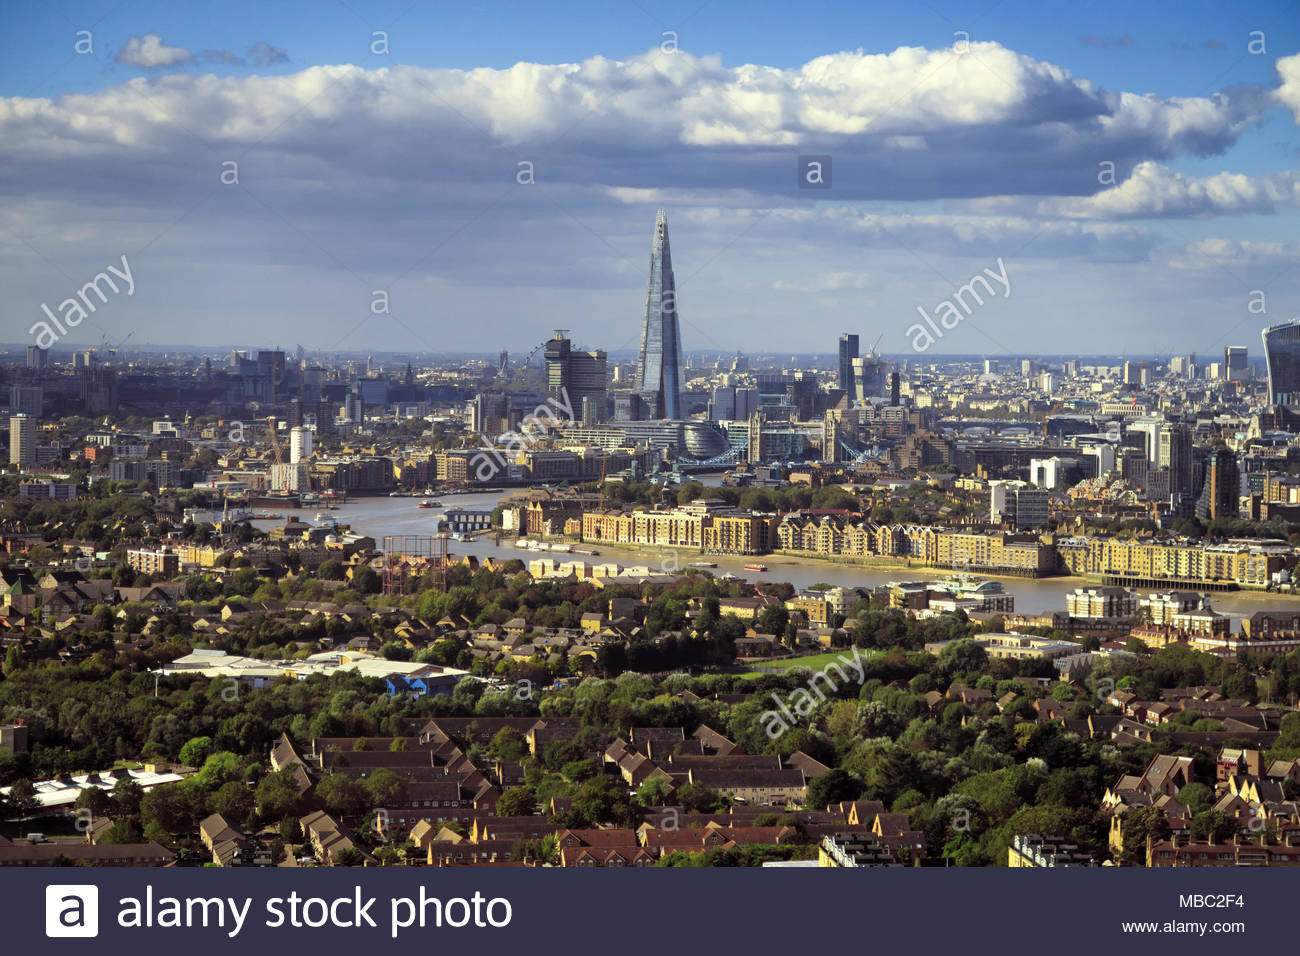 London view during sunny day with bank district, amazing skyscraper Shard and Thames river, United Kingdom - Stock Image